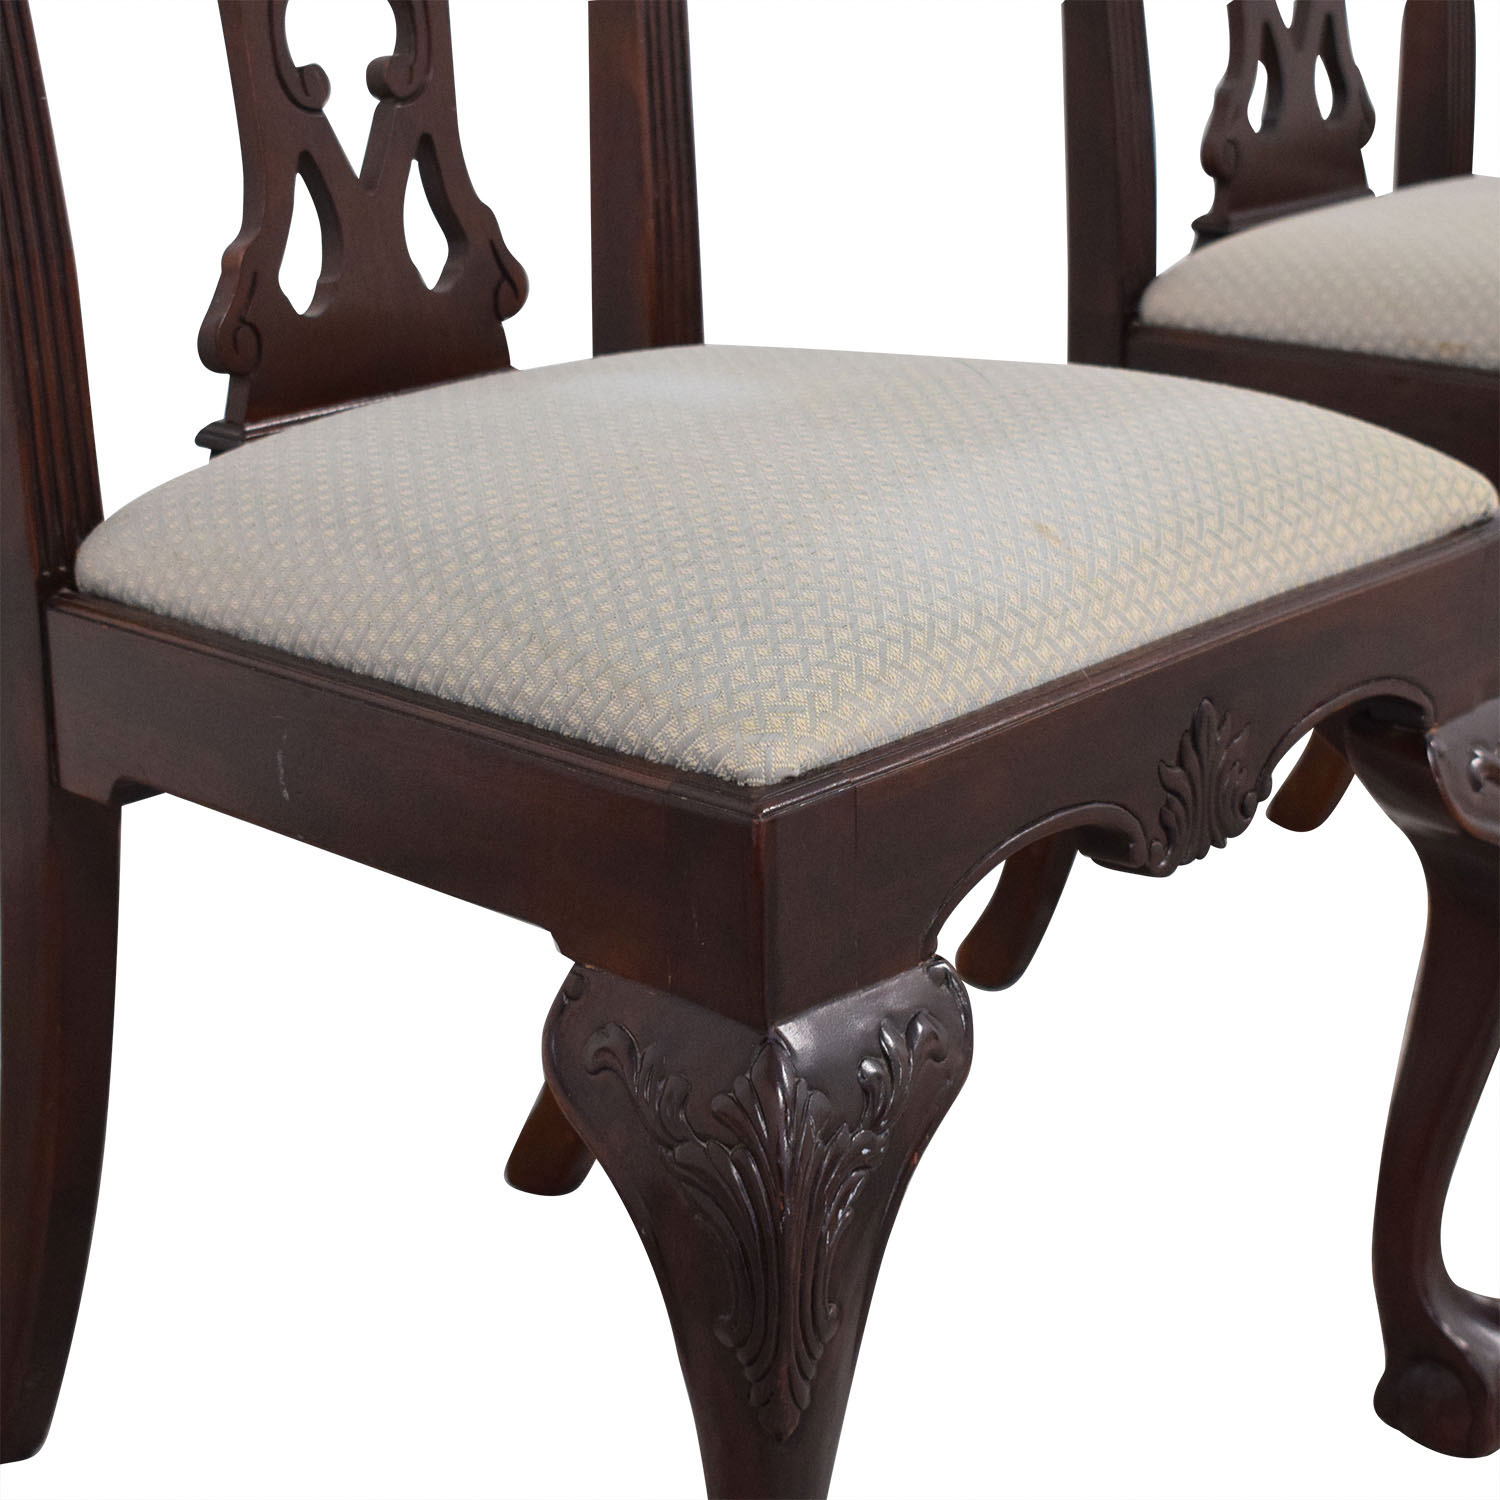 Drexel Heritage Drexel Heritage Armless Dining Chairs coupon